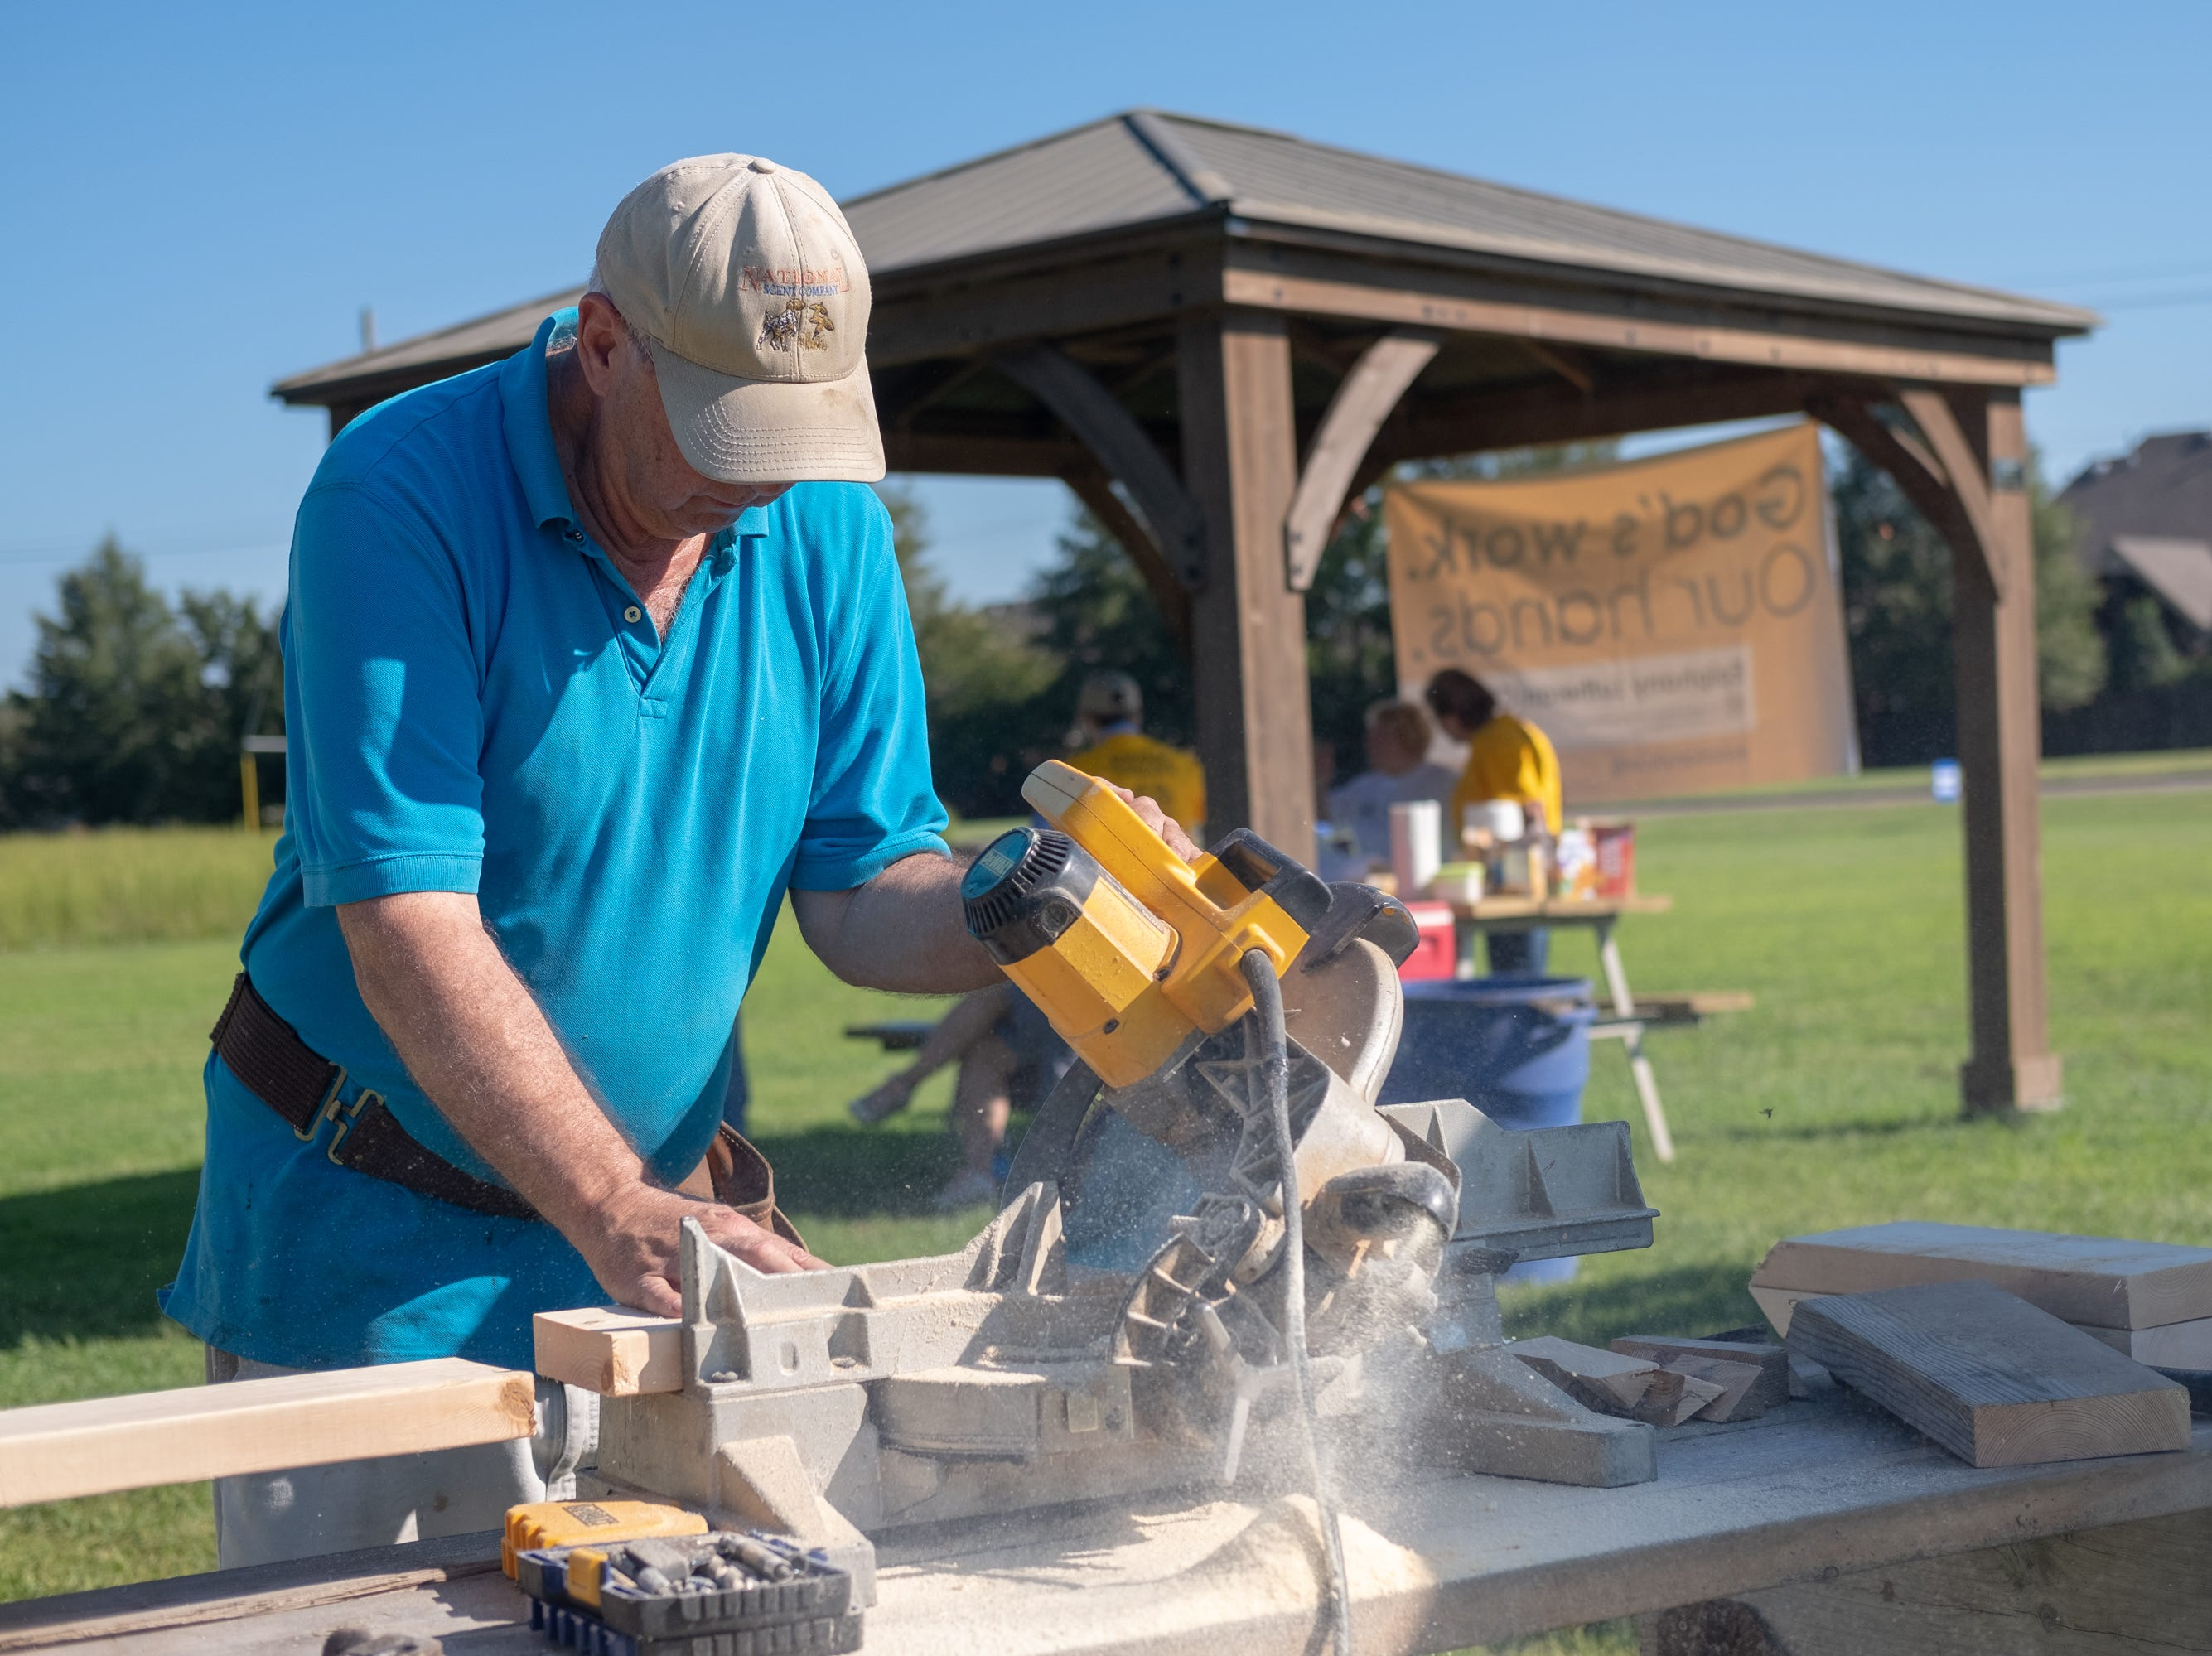 Greg Parker, with Epihany Lutheran Church, cuts wooden boards for a bird house on Saturday, Sept. 15, 2018.